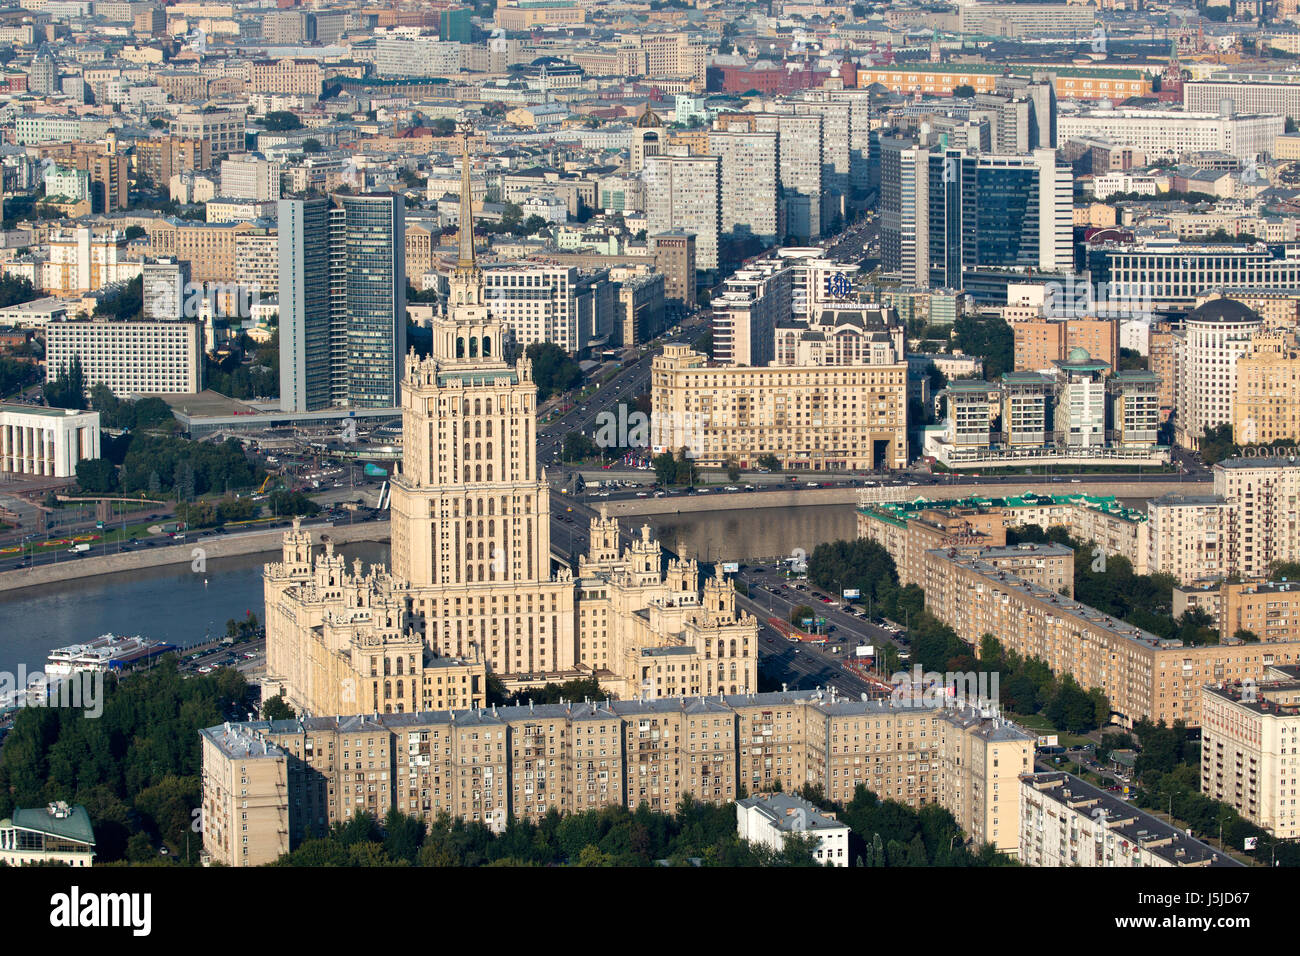 Aerial view of the Radisson Royal Hotel is a historic five-star luxury hotel in Moscow city centre, Russia - Stock Image